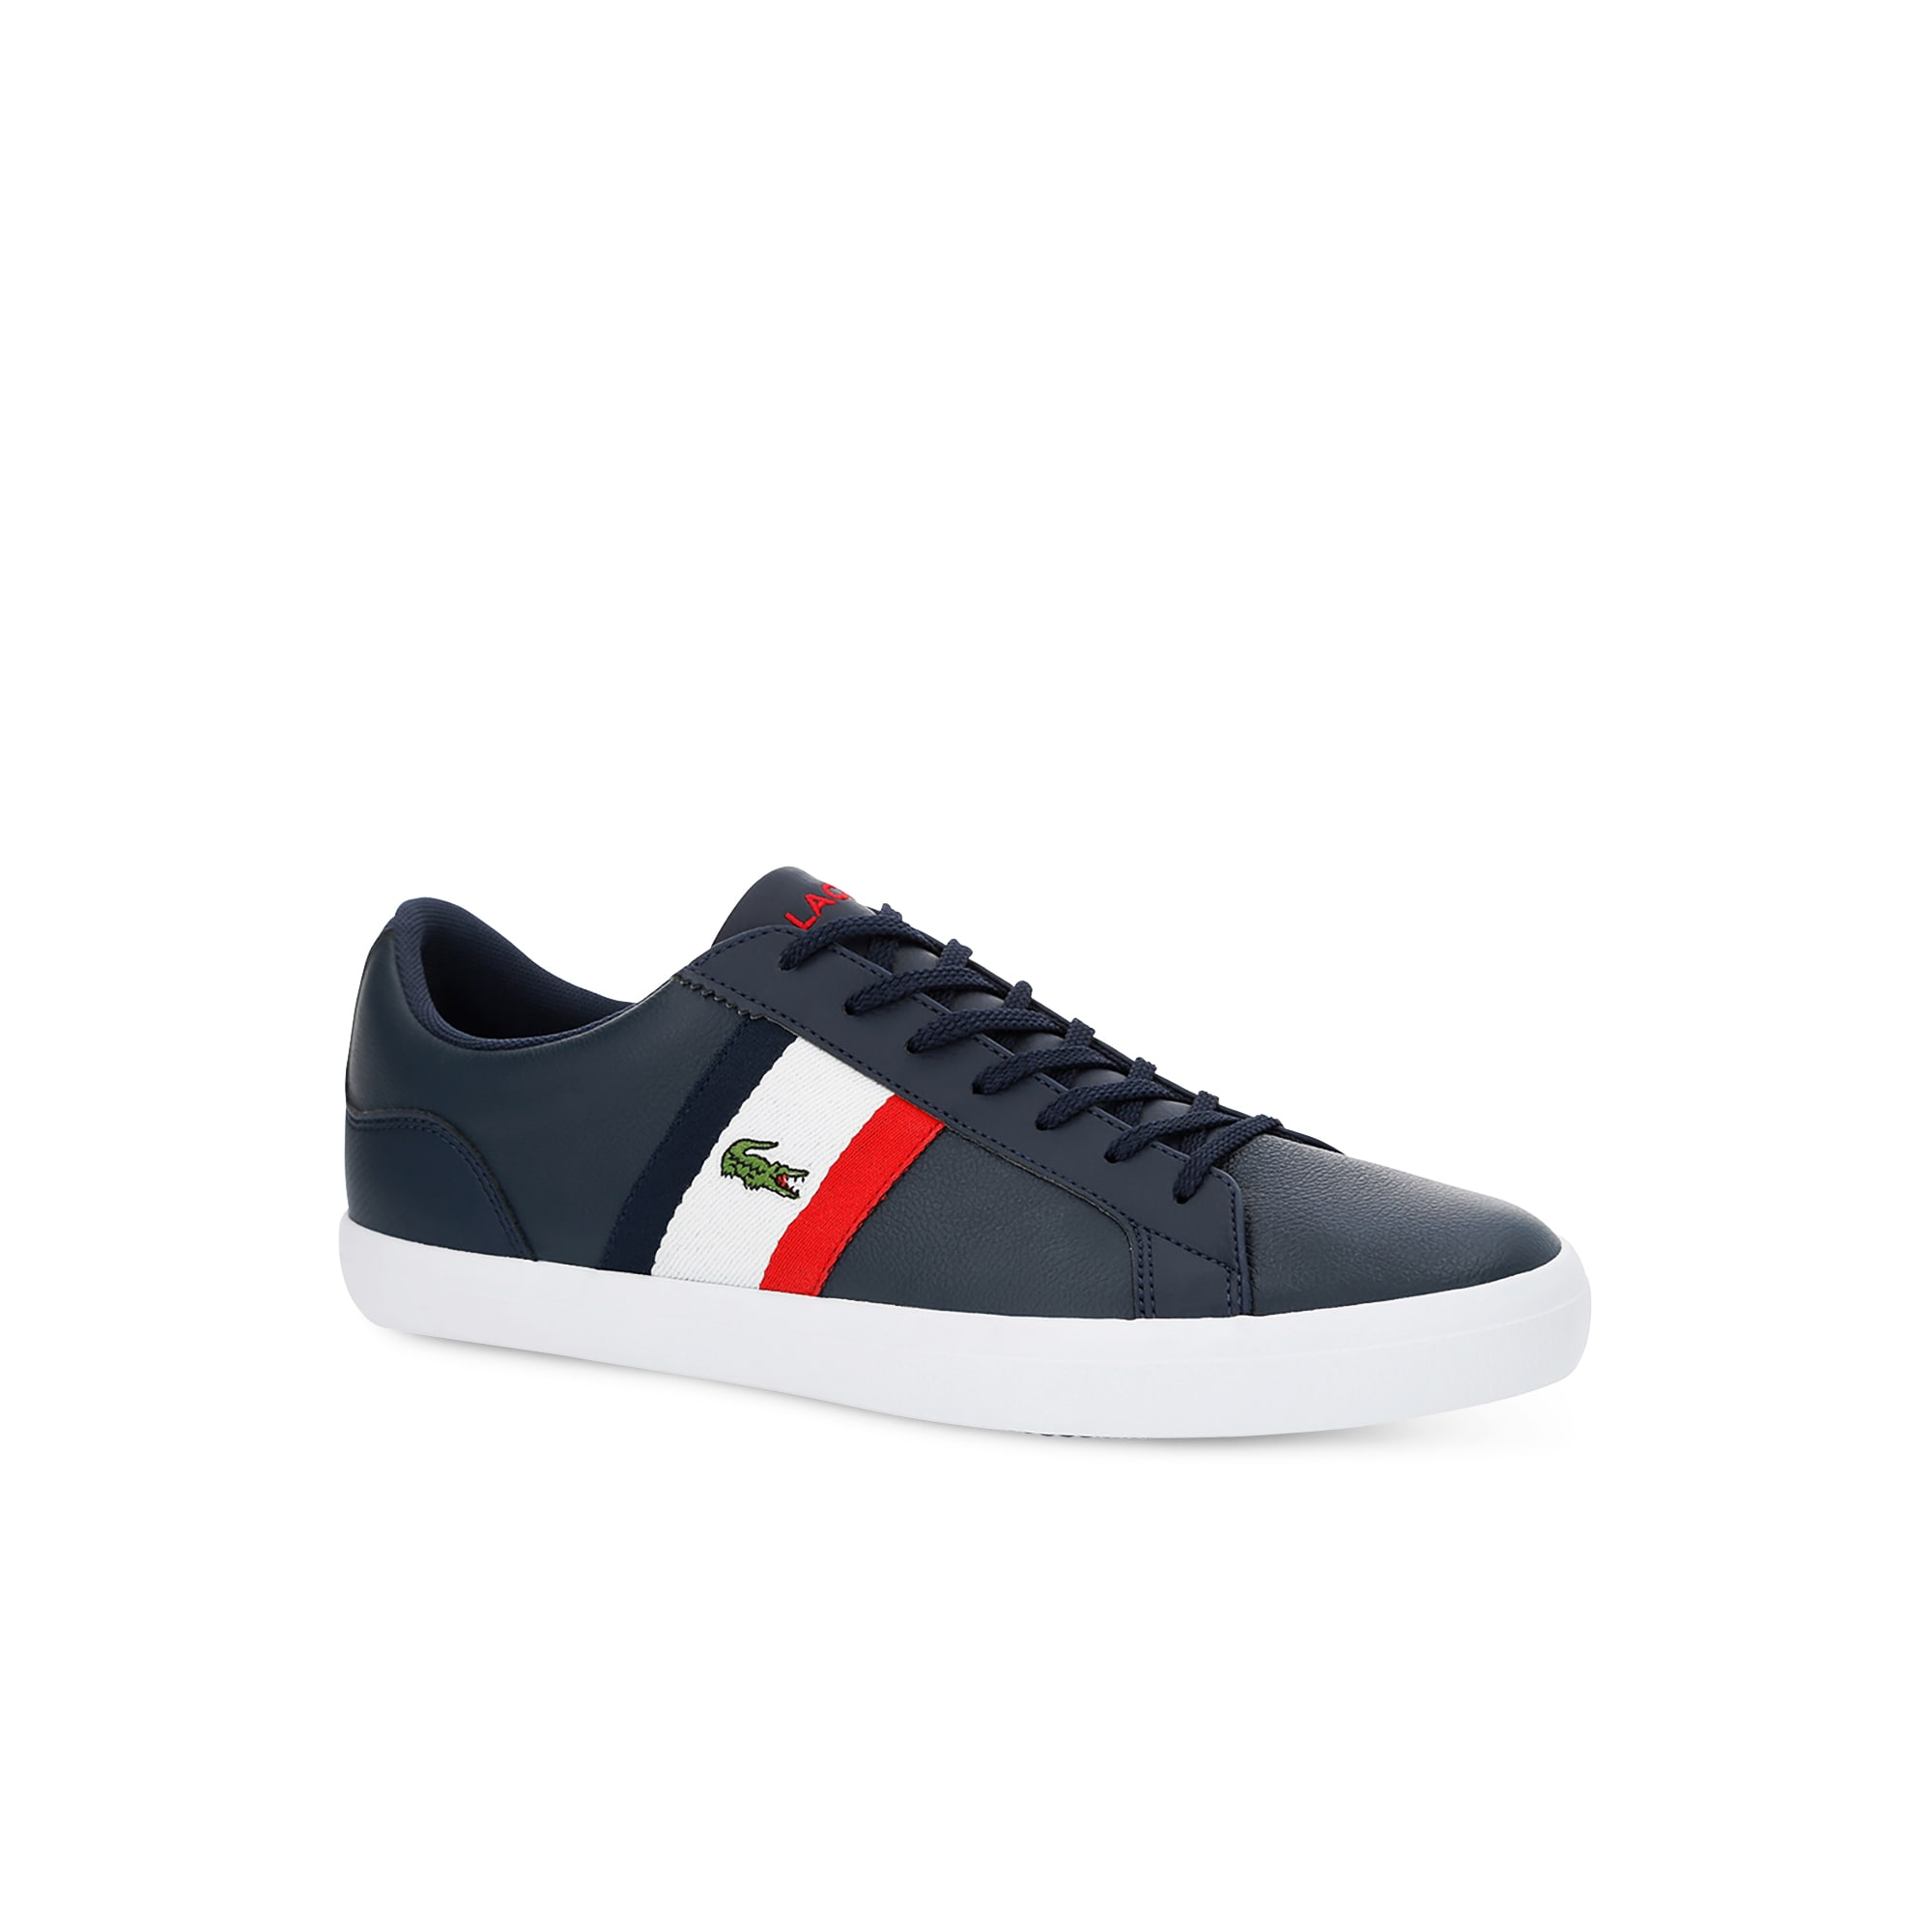 521db828eb All Shoes | LACOSTE